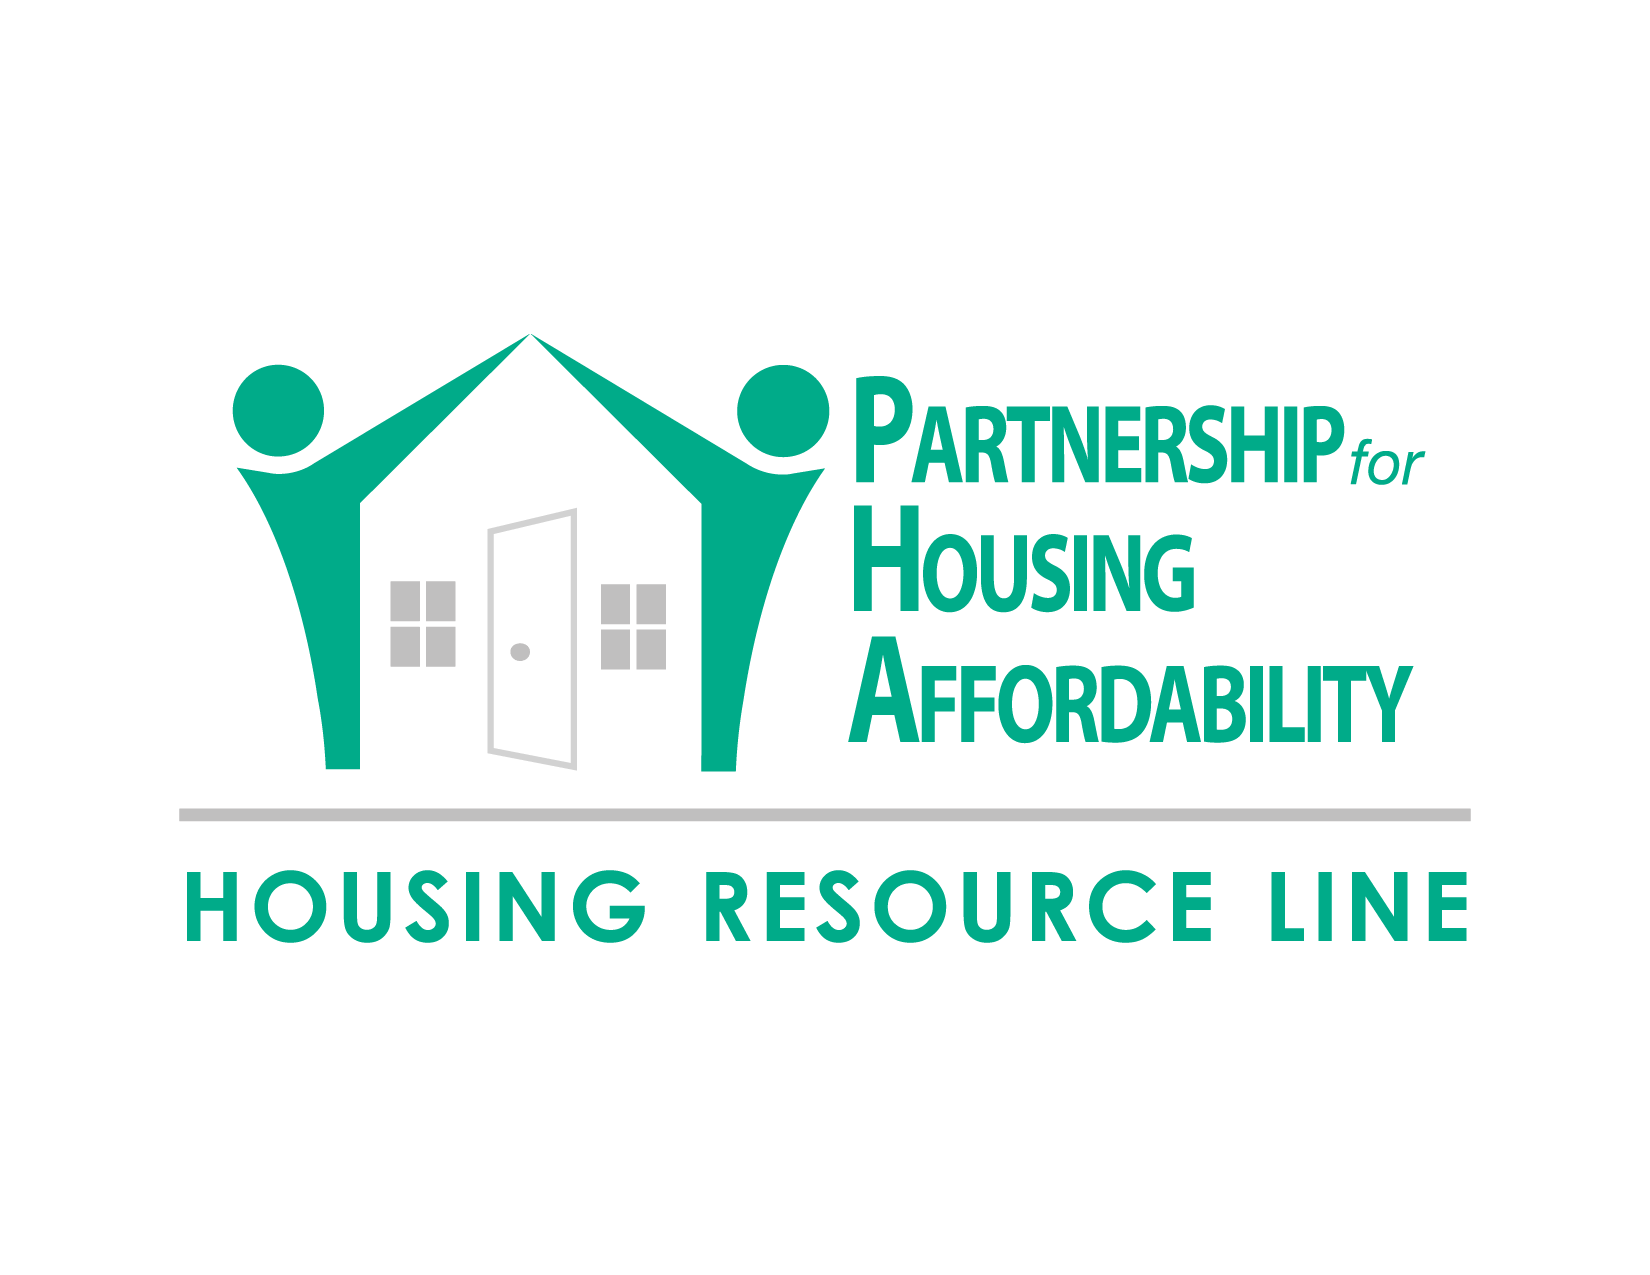 New housing hotline launches in Central Virginia